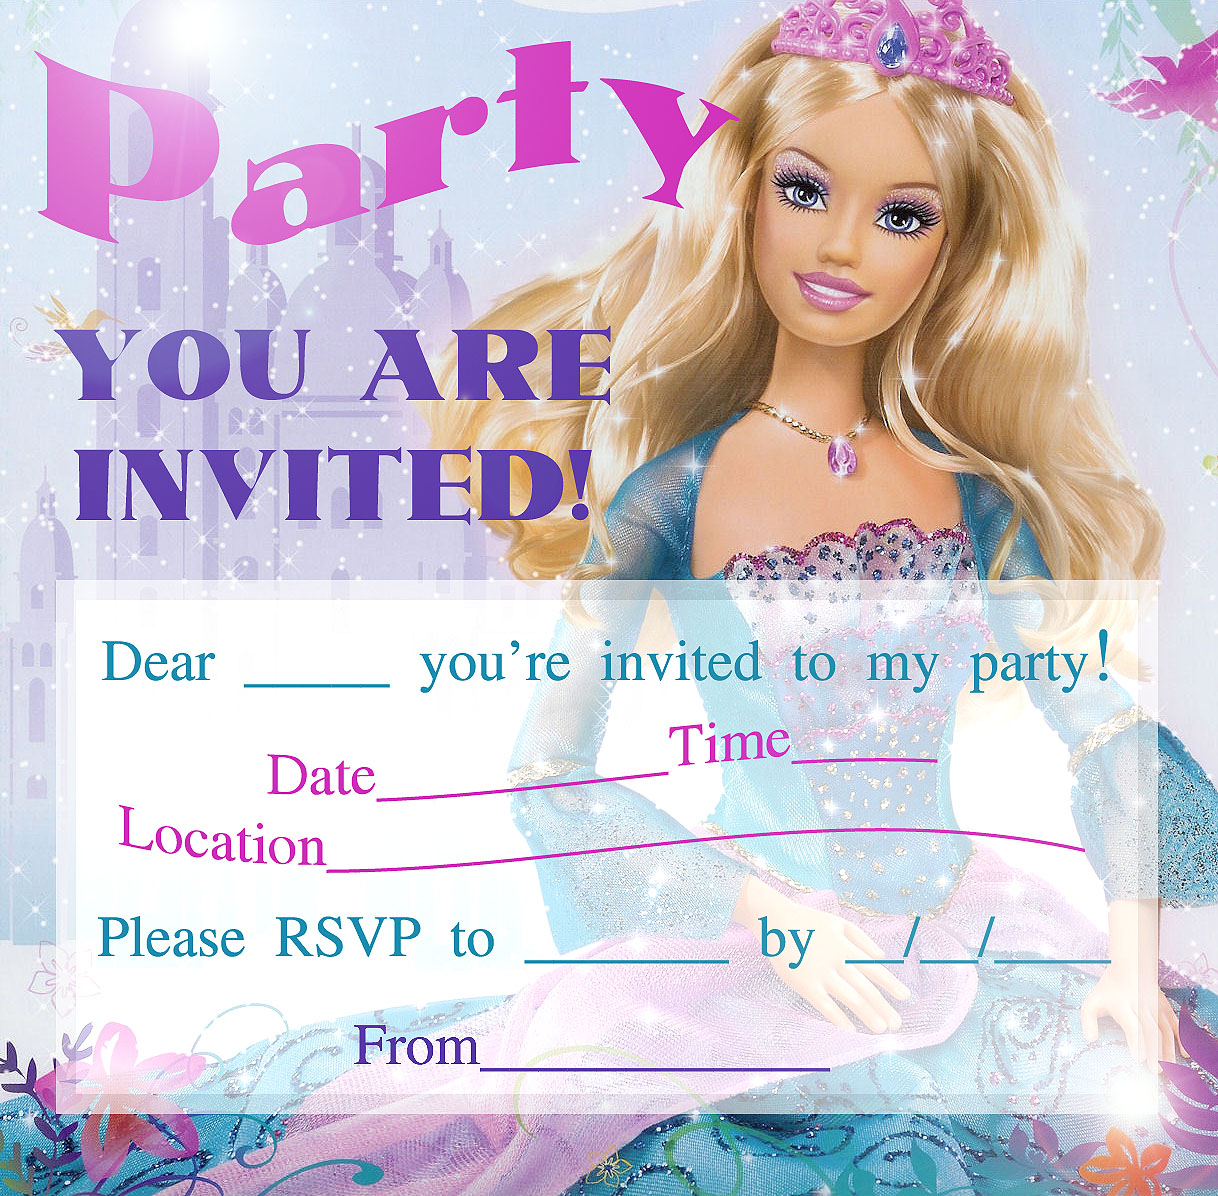 Barbie coloring pages barbie printable invitations for a party barbie printable invitations for a party stopboris Gallery